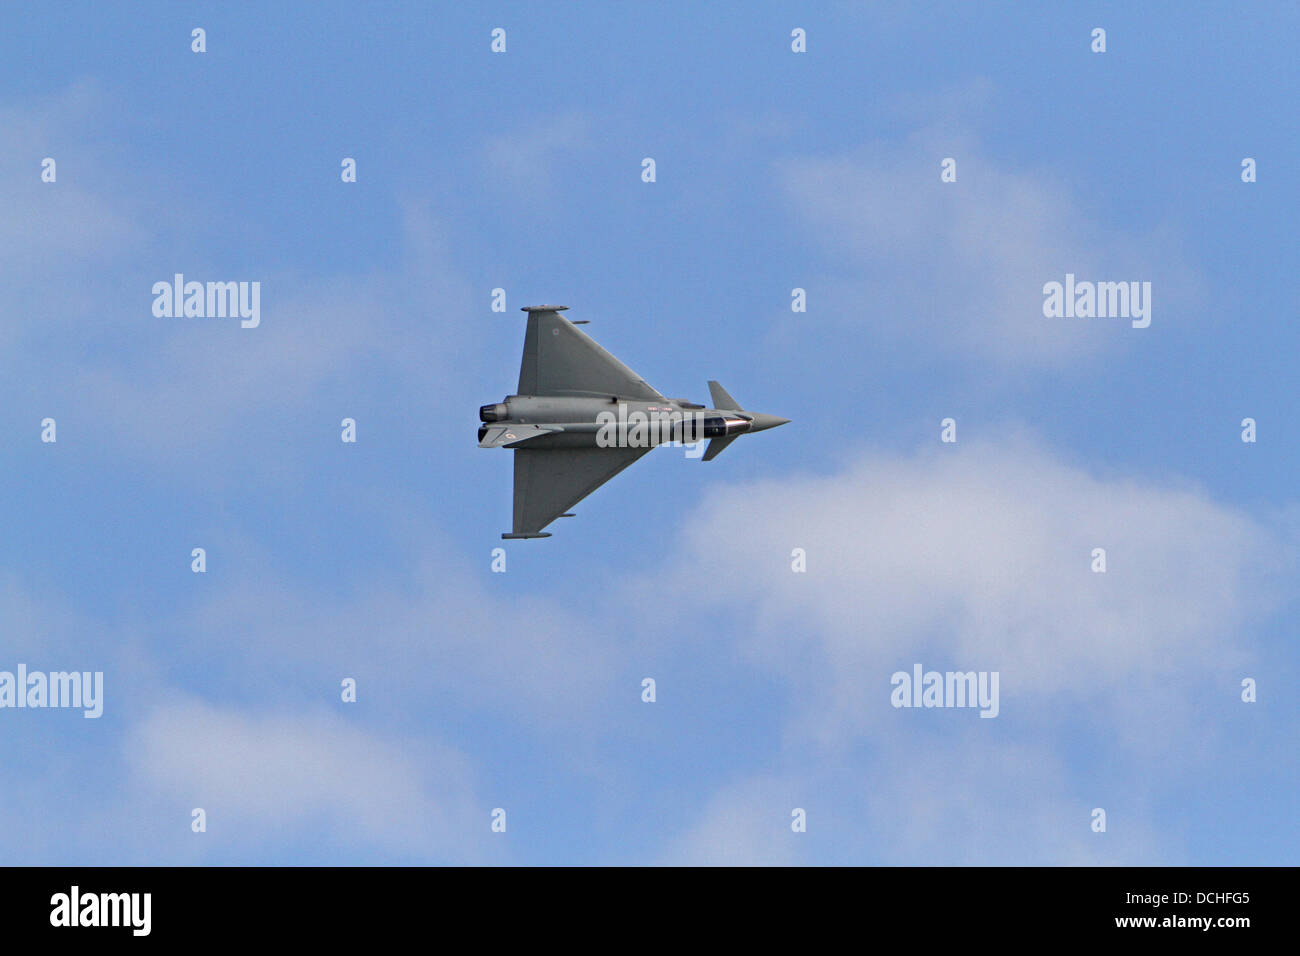 Eastbourne,UK,18th August 2013,The Typhoon flies during Airbourn Credit: Keith Larby/Alamy Live News - Stock Image